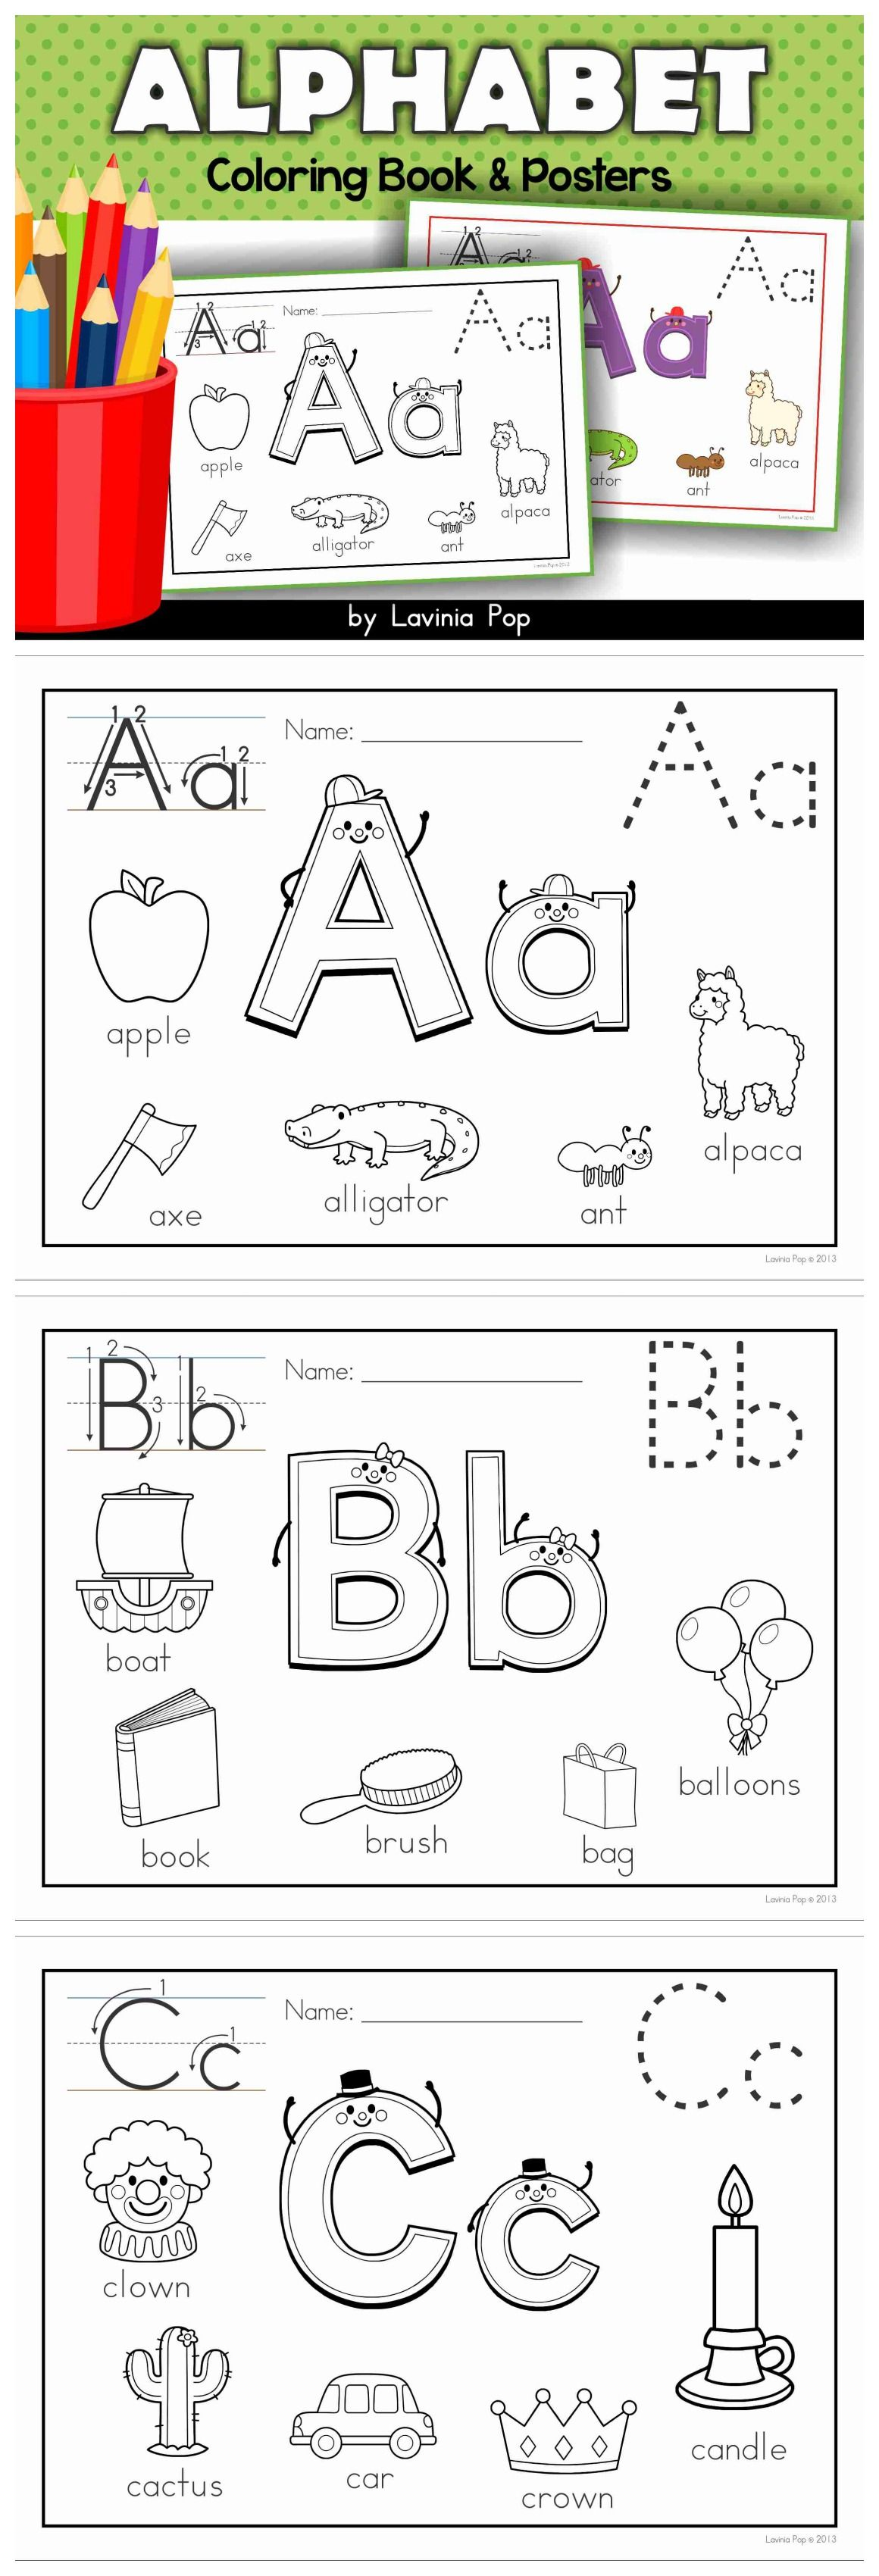 Long vowel coloring sheet - Alphabet Coloring Book And Posters Includes Extra Pages For Beginning Long Vowel Sounds And Soft